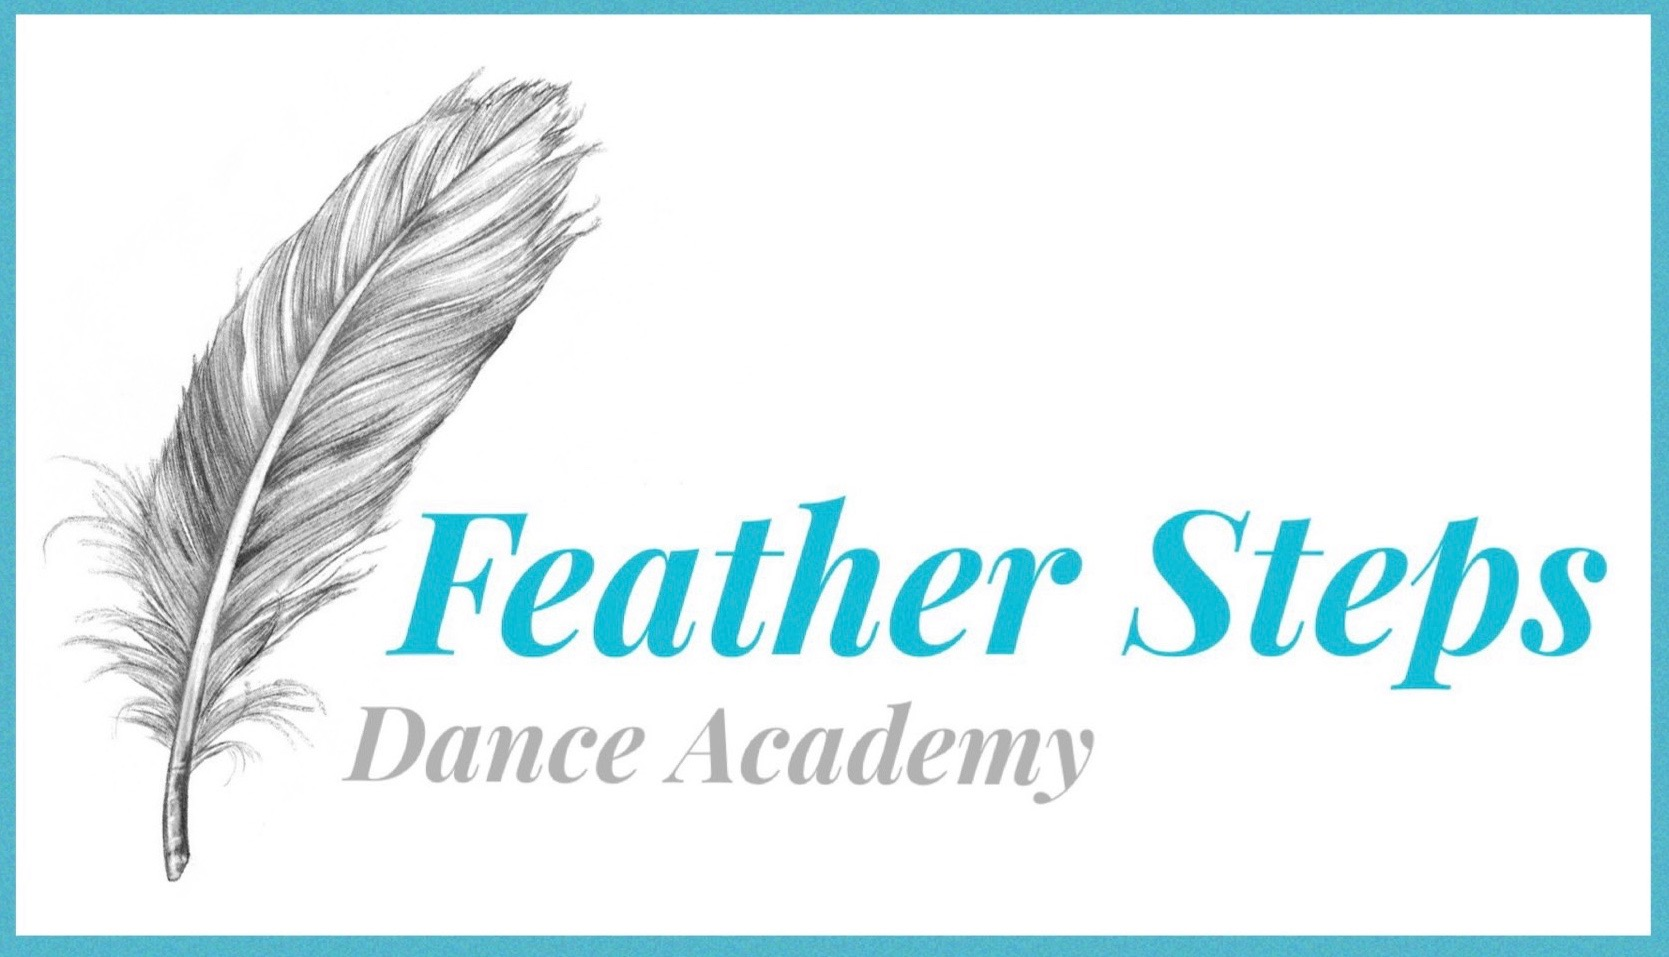 Feather steps logo